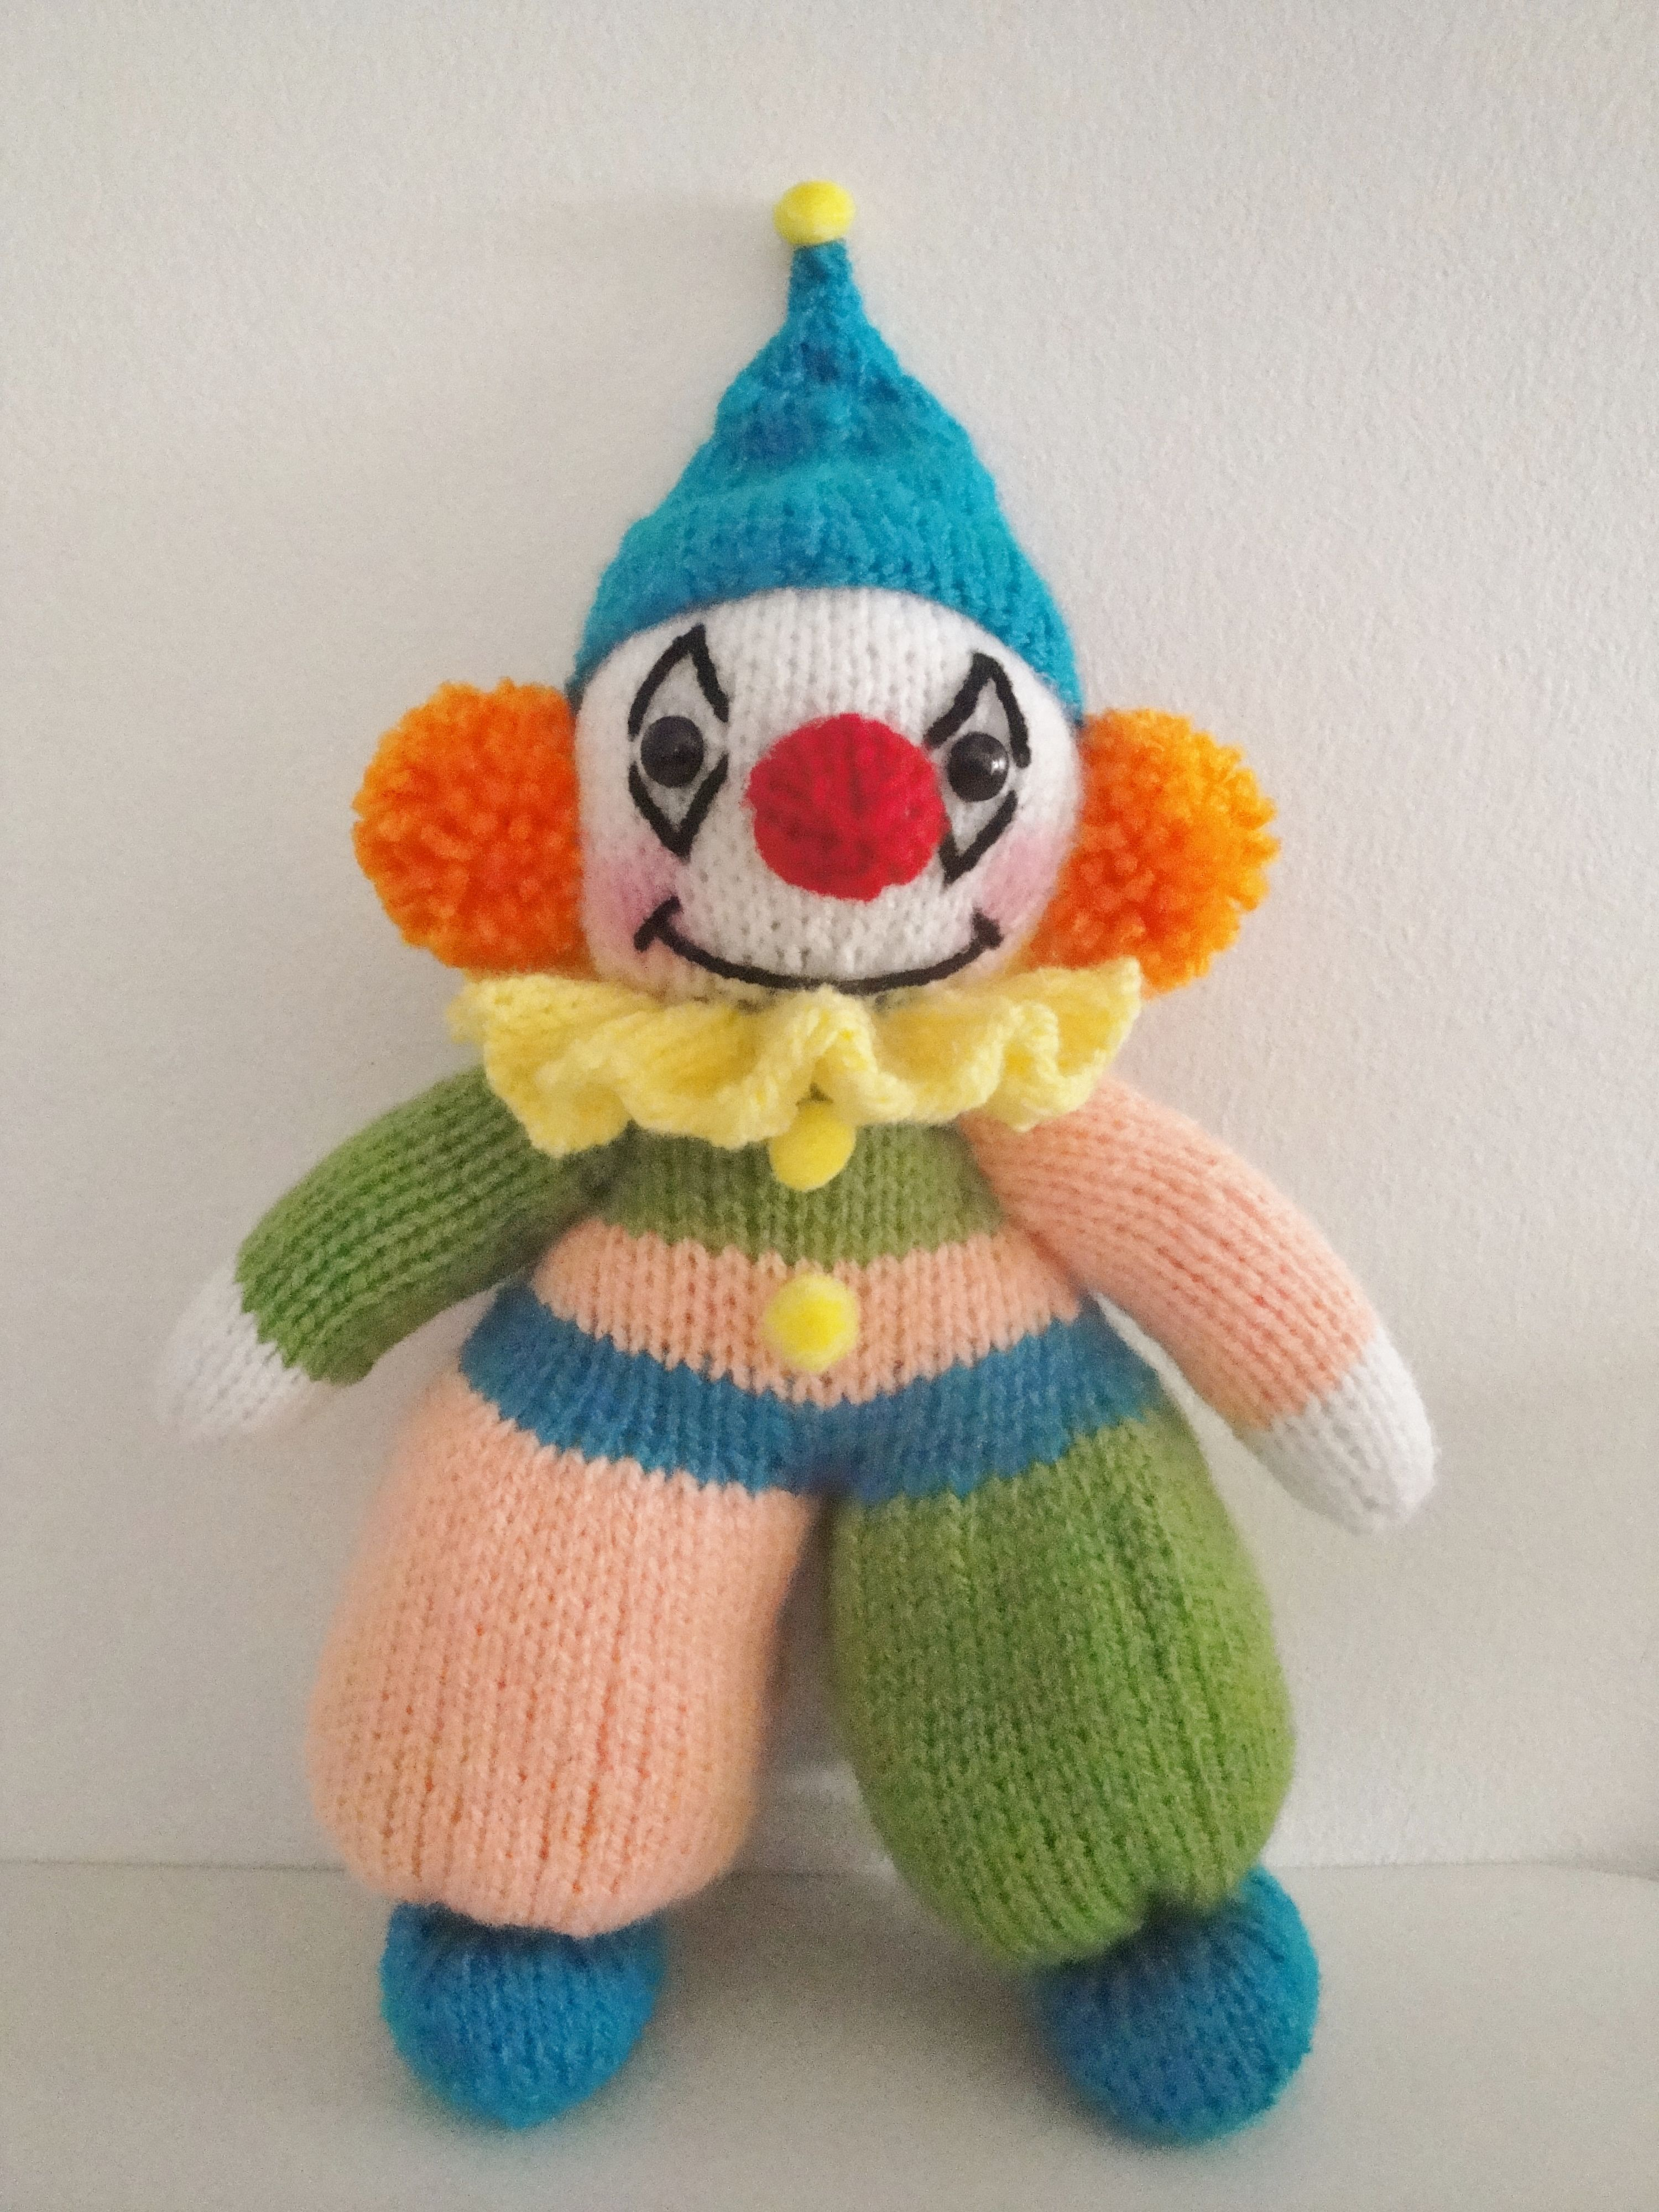 Scrappy the Clown | My Knit Toy Patterns | Pinterest | Knitted toys ...